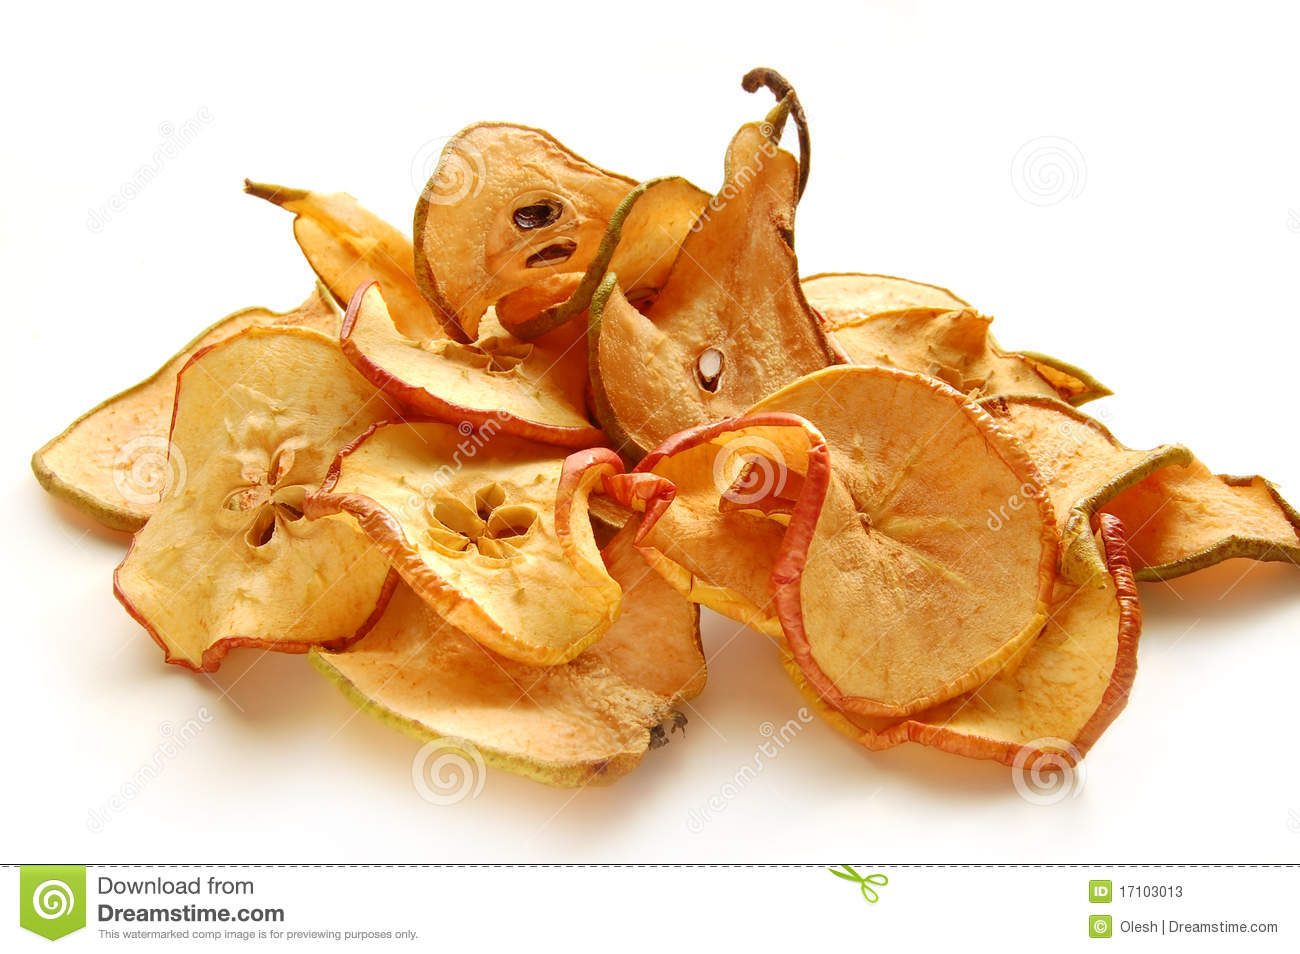 Dried Apples And Pears Stock Photos - Image: 17103013